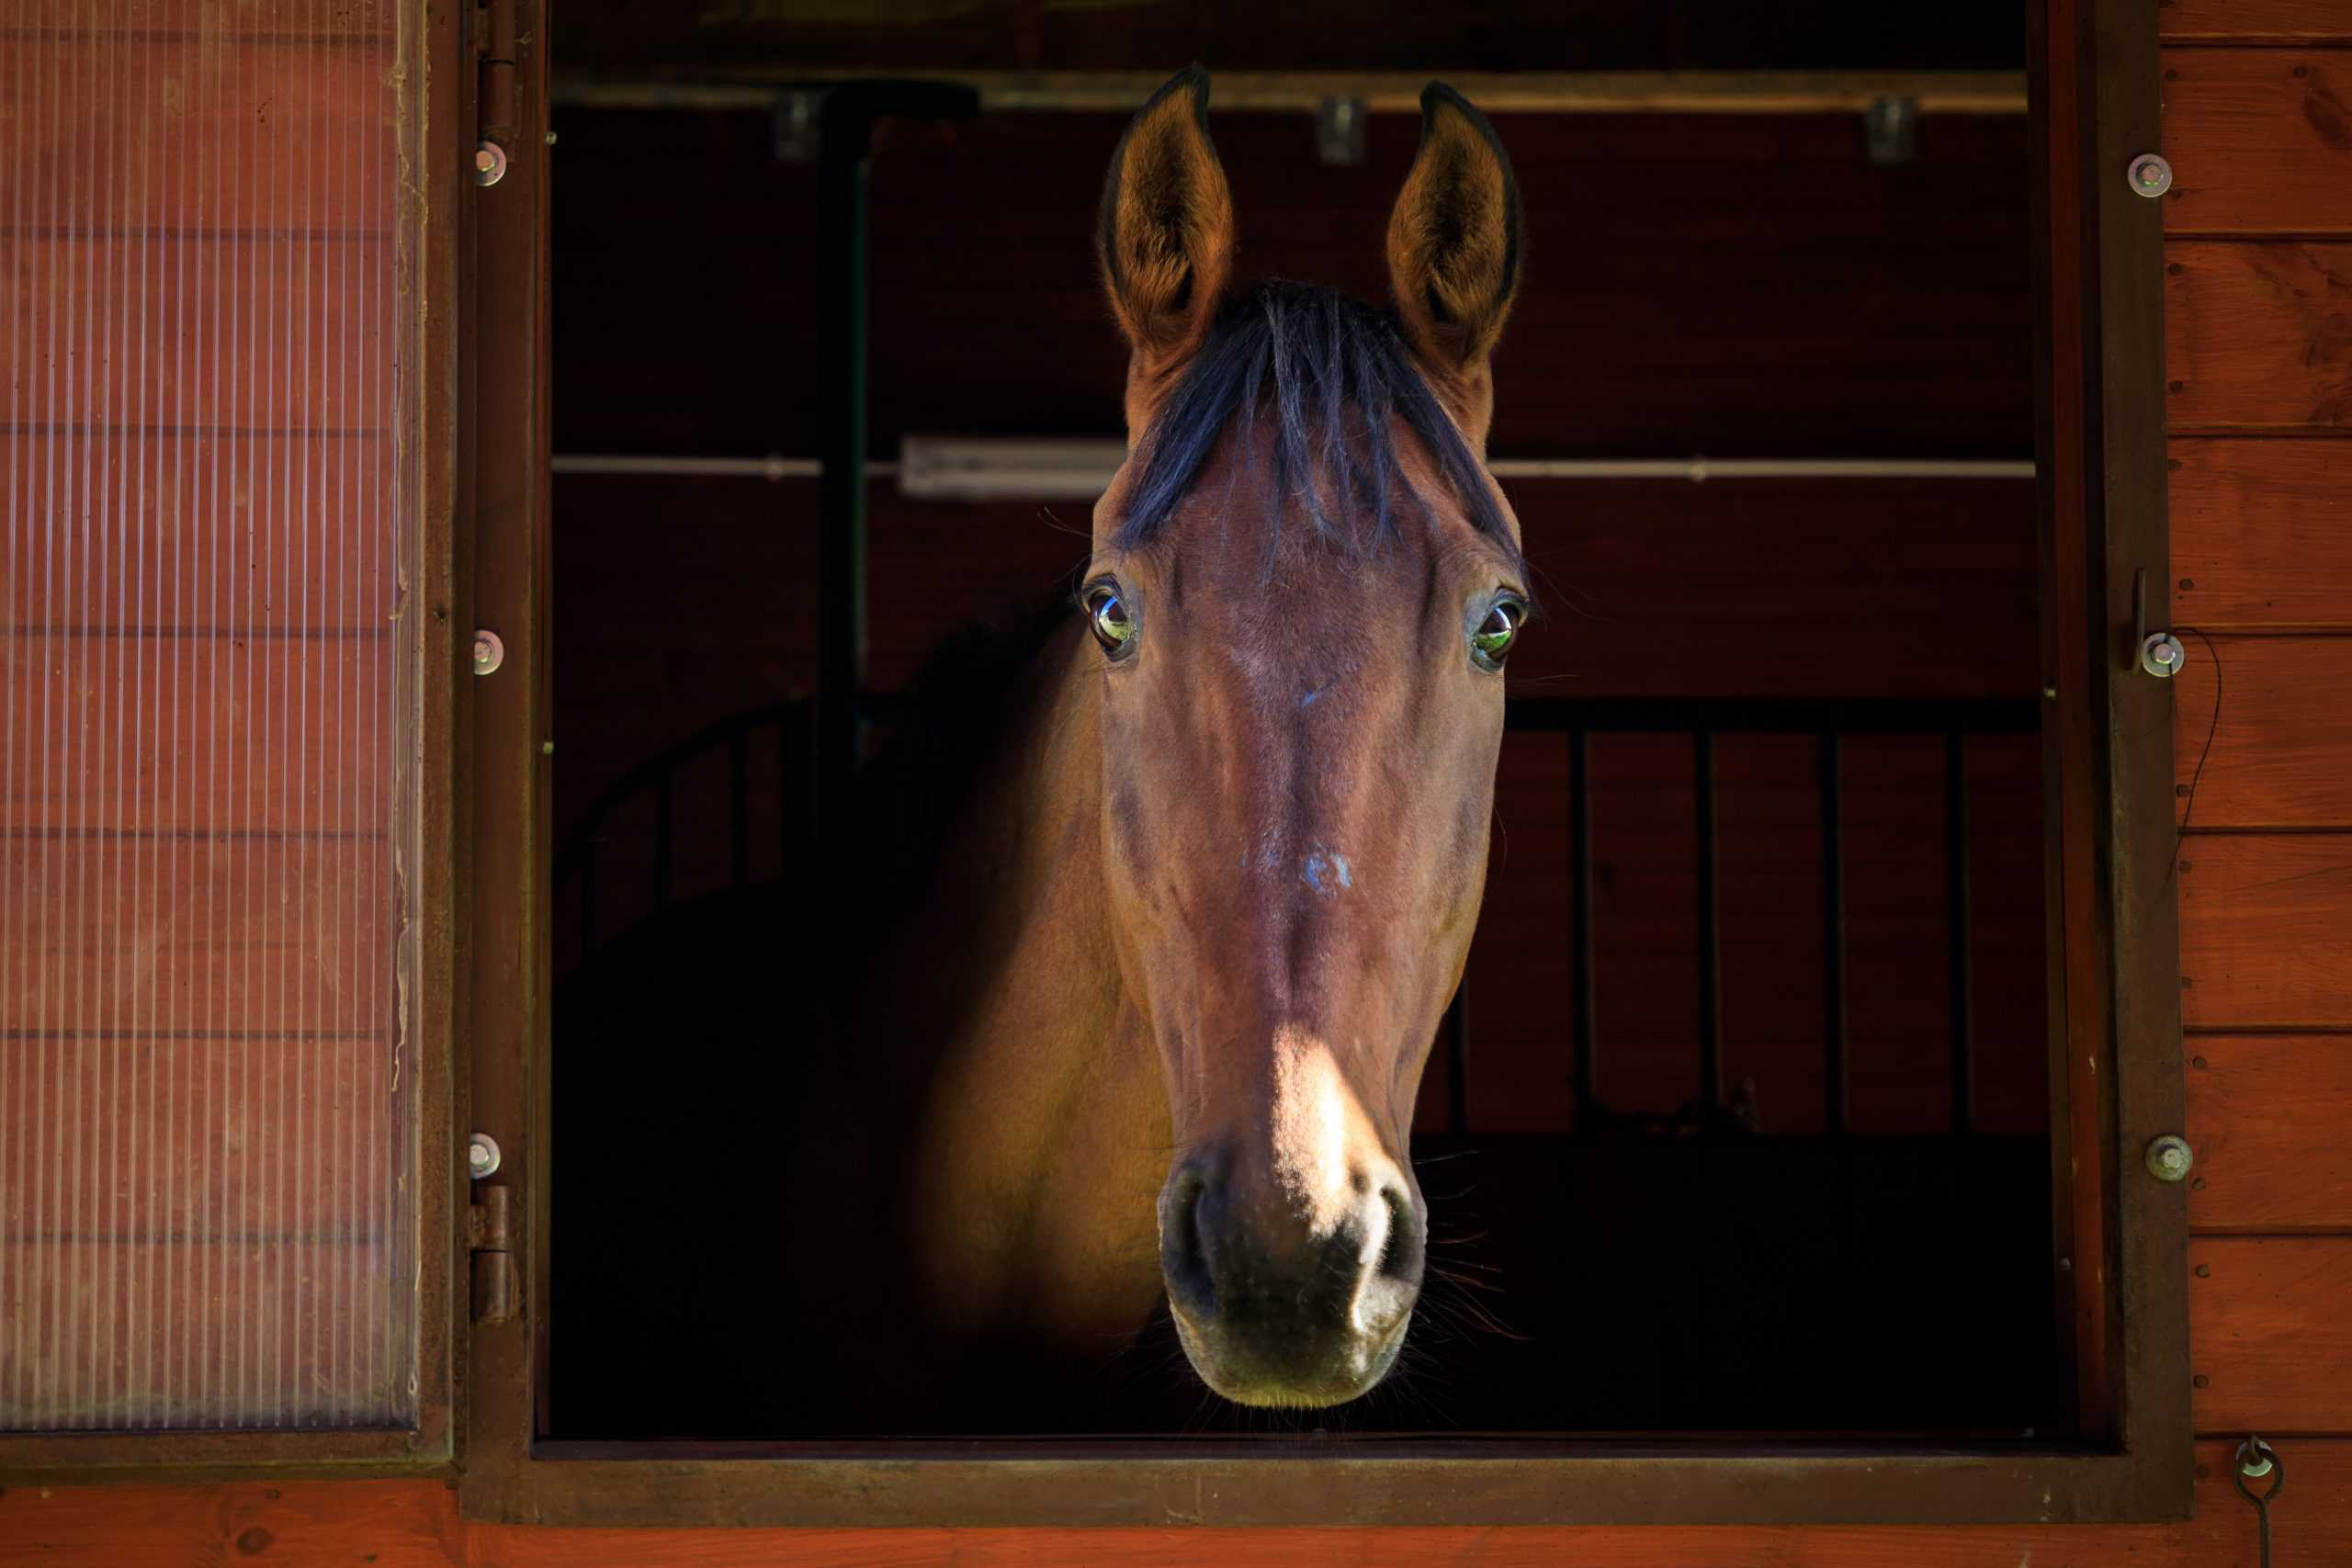 Portrait of the horse in a stall